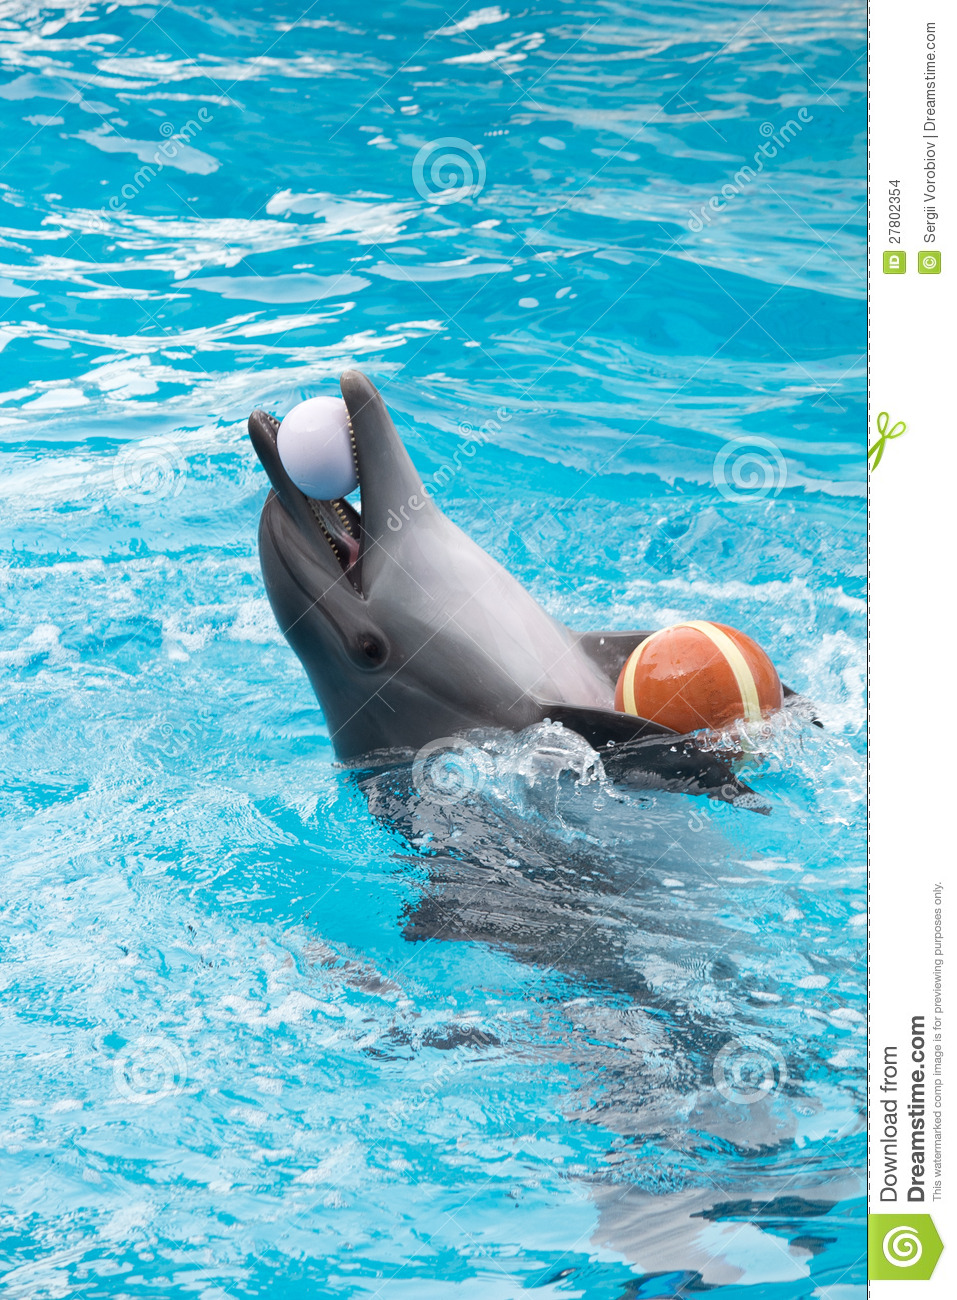 Dolphin play in pool stock images image 27802354 for Poole dolphin swimming pool prices